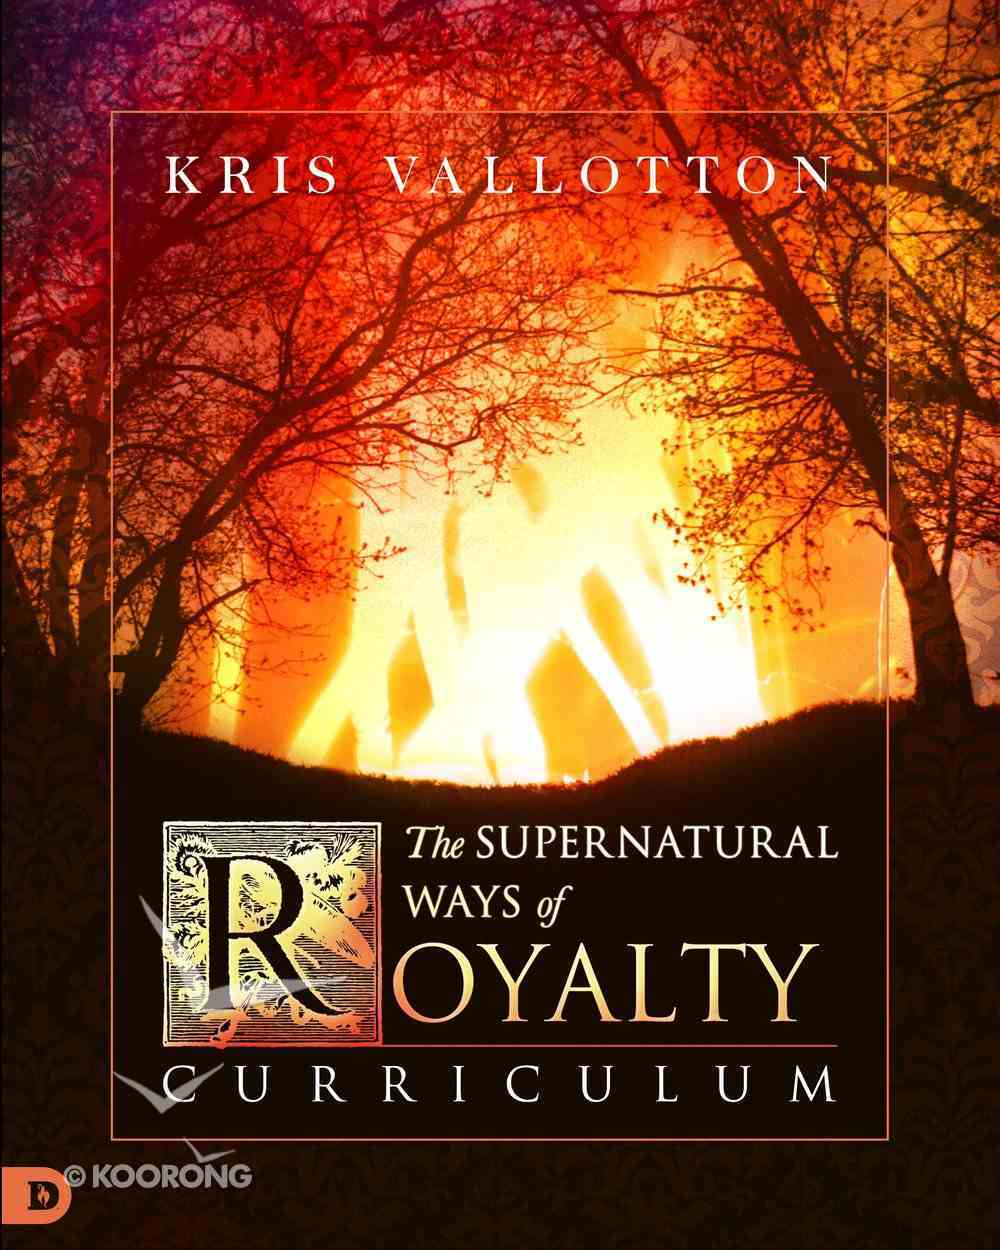 The Supernatural Ways of Royalty (Curriculum) Pack